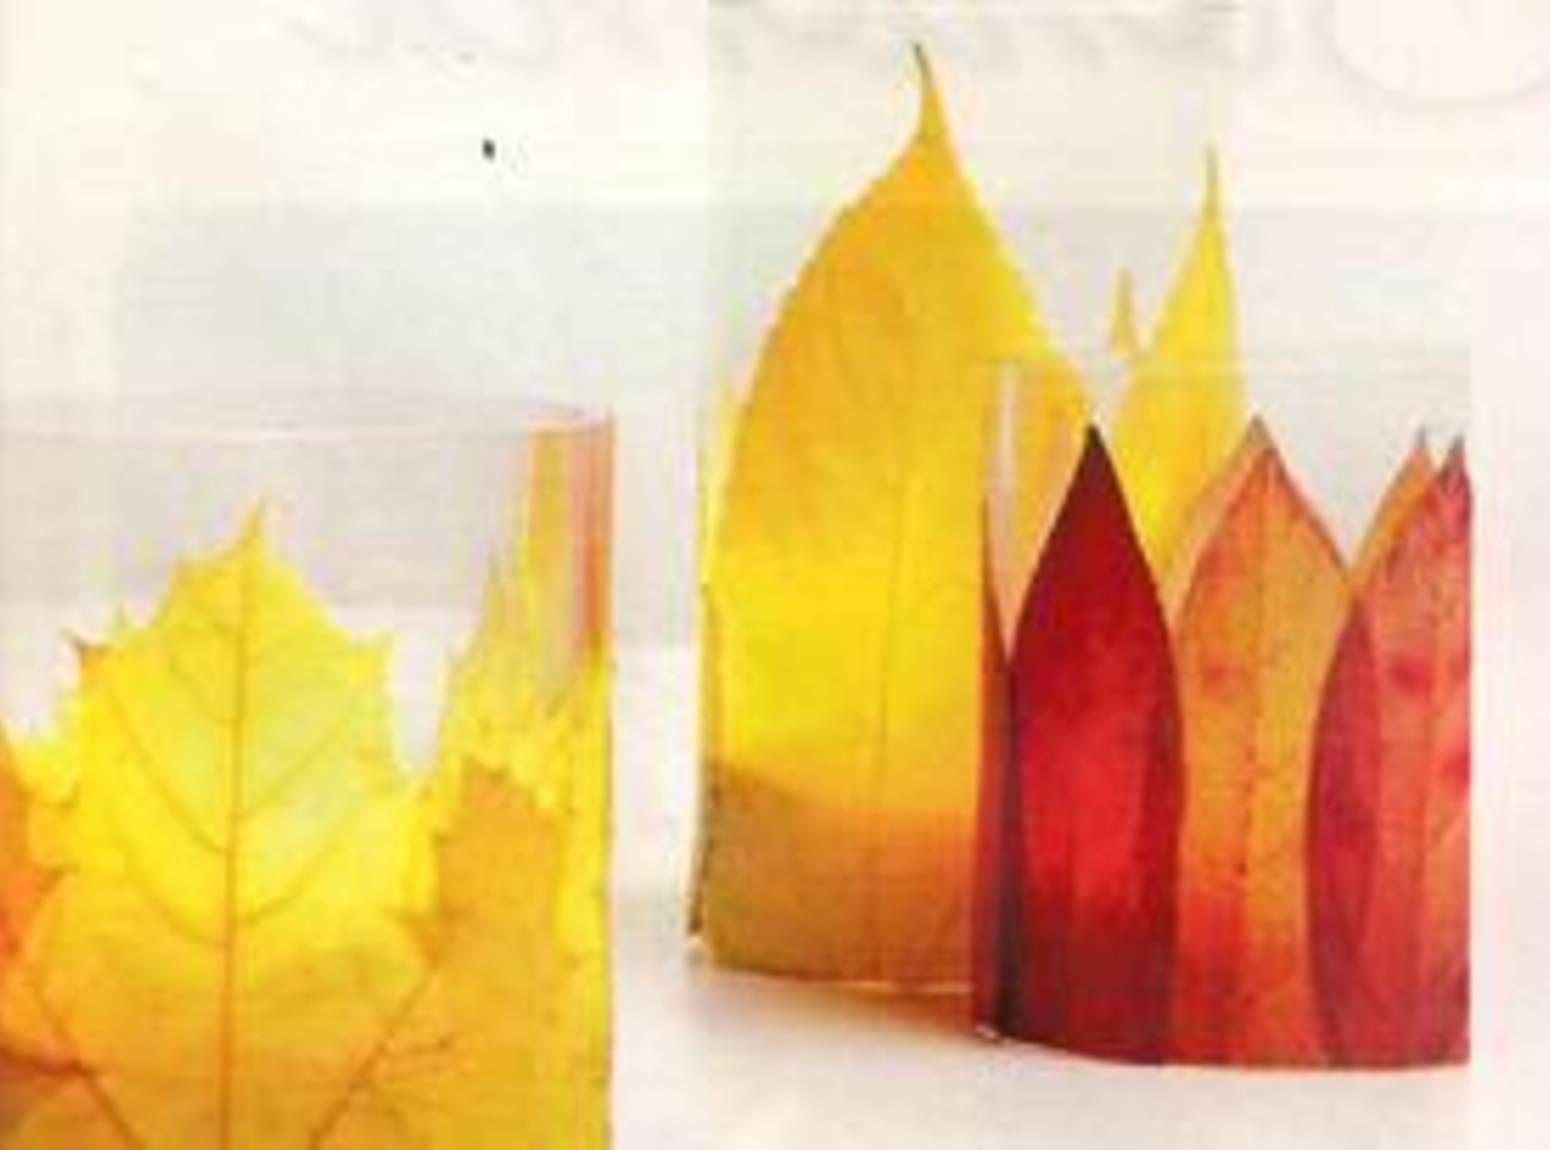 You can also use other type of things instead of leaves. Great craft idea for teachers to have children make gifts for mom and dad!